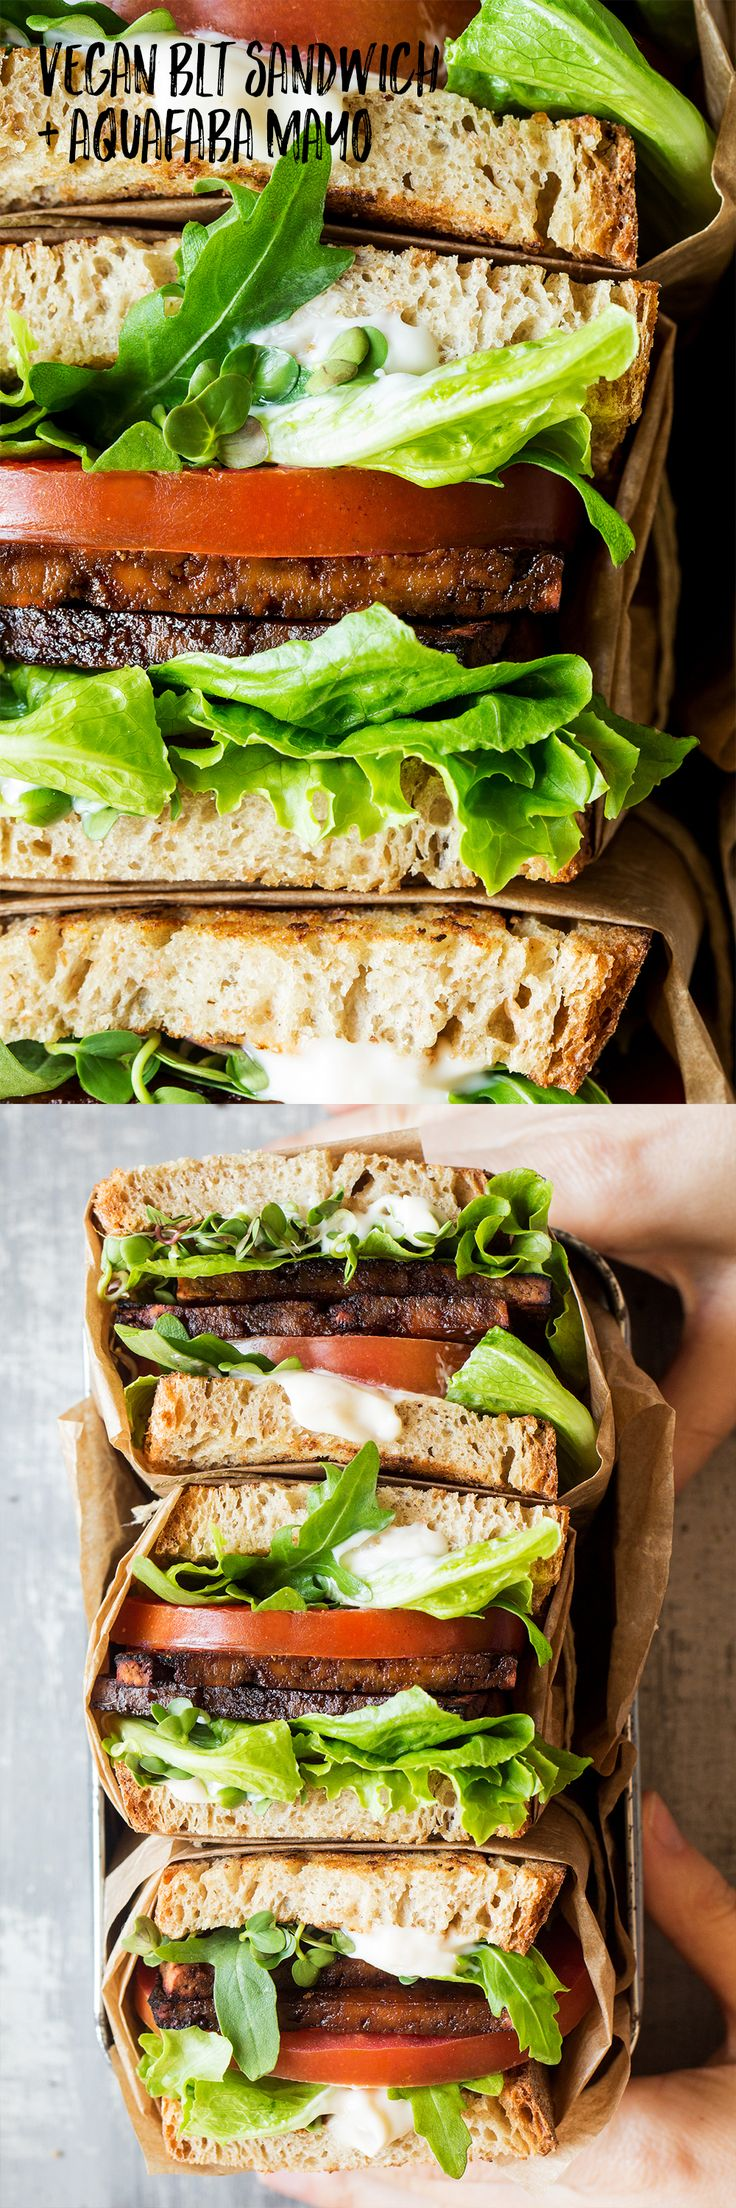 This vegan BLT sandwich has it all: saltiness, smokiness, crunch, and mayonnaise hugged between toasted sourdough.